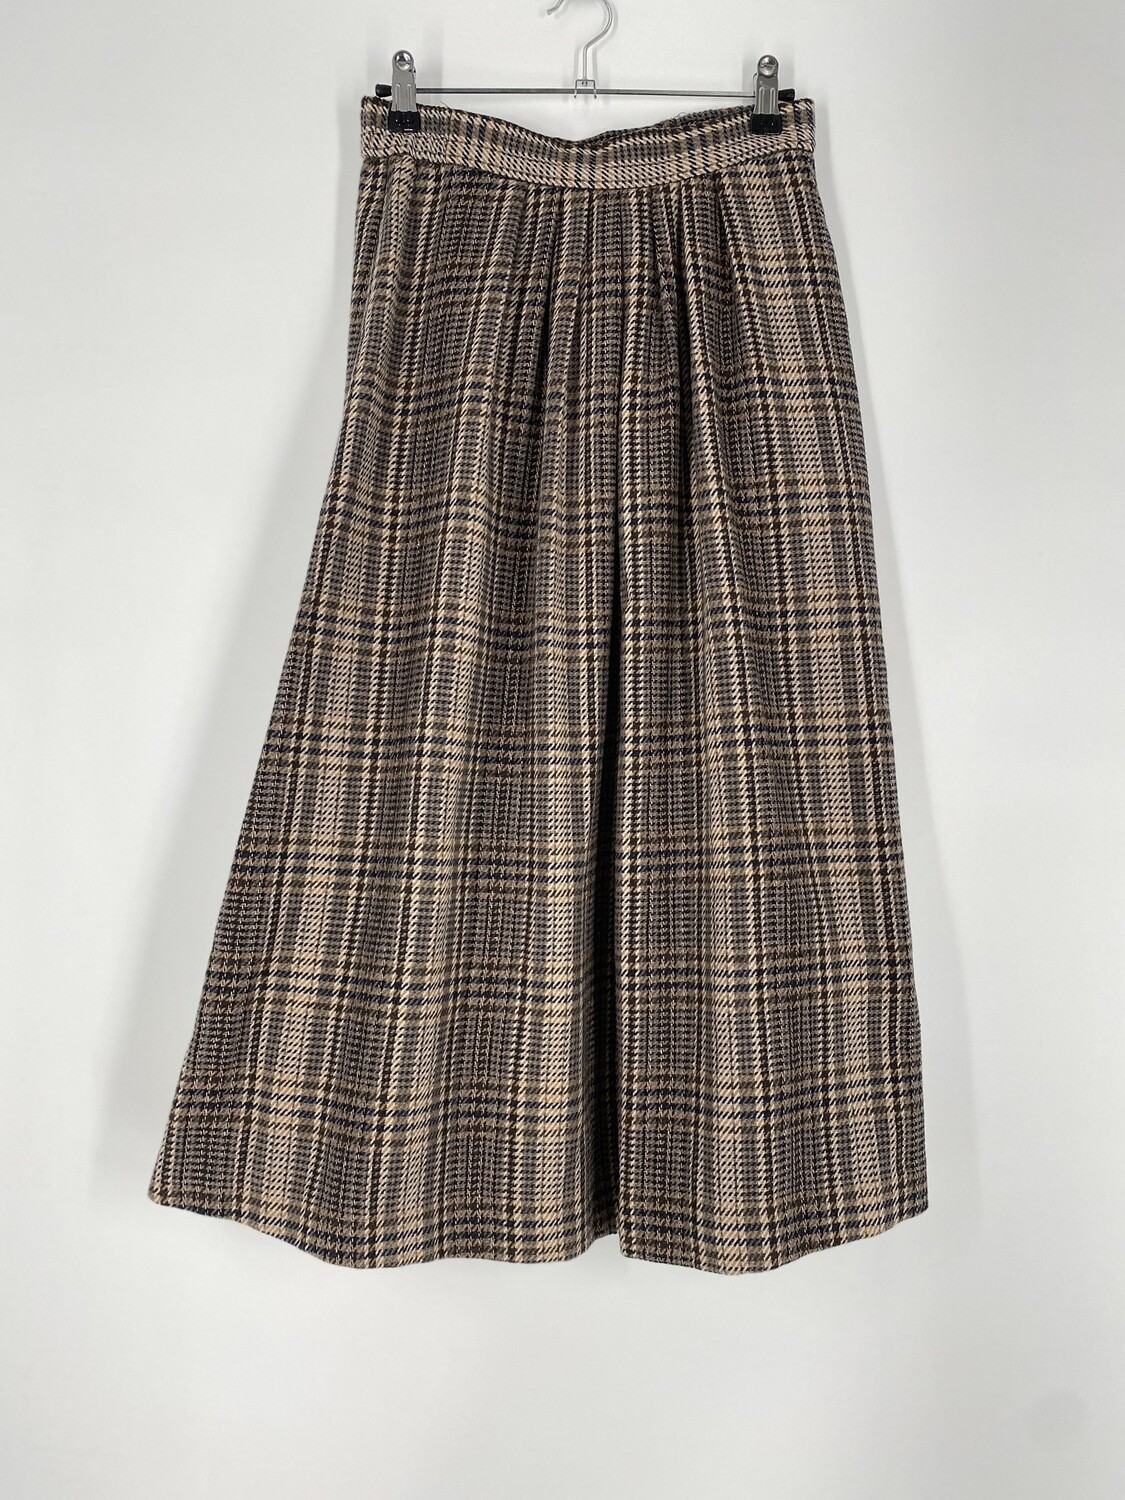 Career Editions Plaid Skirt Size M